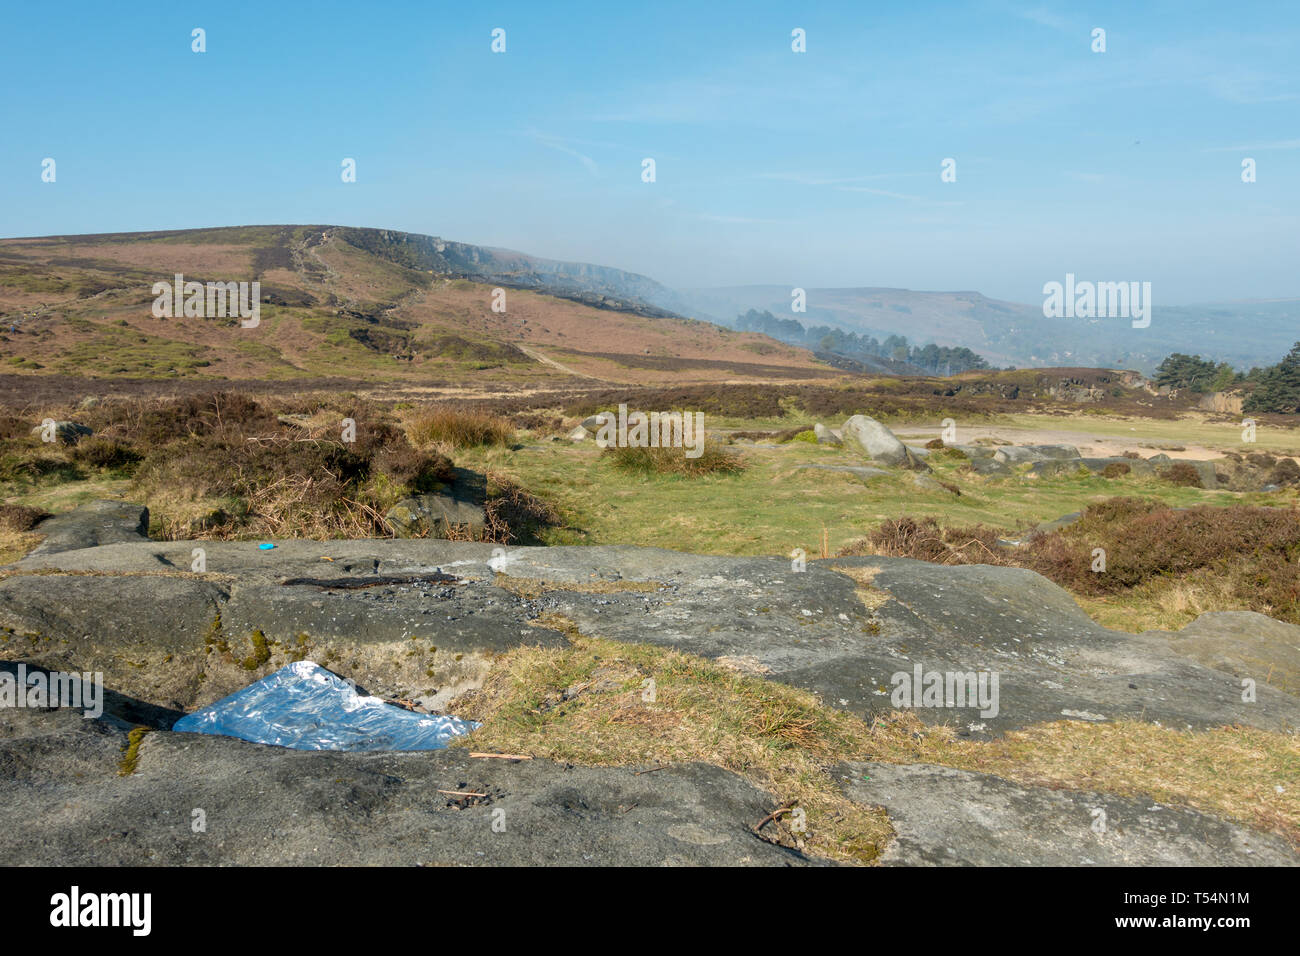 Yorkshire, UK. 21st April 2019.  Fire services continue efforts to extinguish fire on Ilkley Moor.  Discarded barbecue after yesterday's hot day with a burning moor in the background and locals and fire investigation officers question, 'what started it?' and the BBC reports arrests have been made. Credit: Rebecca Cole/Alamy Live News - Stock Image